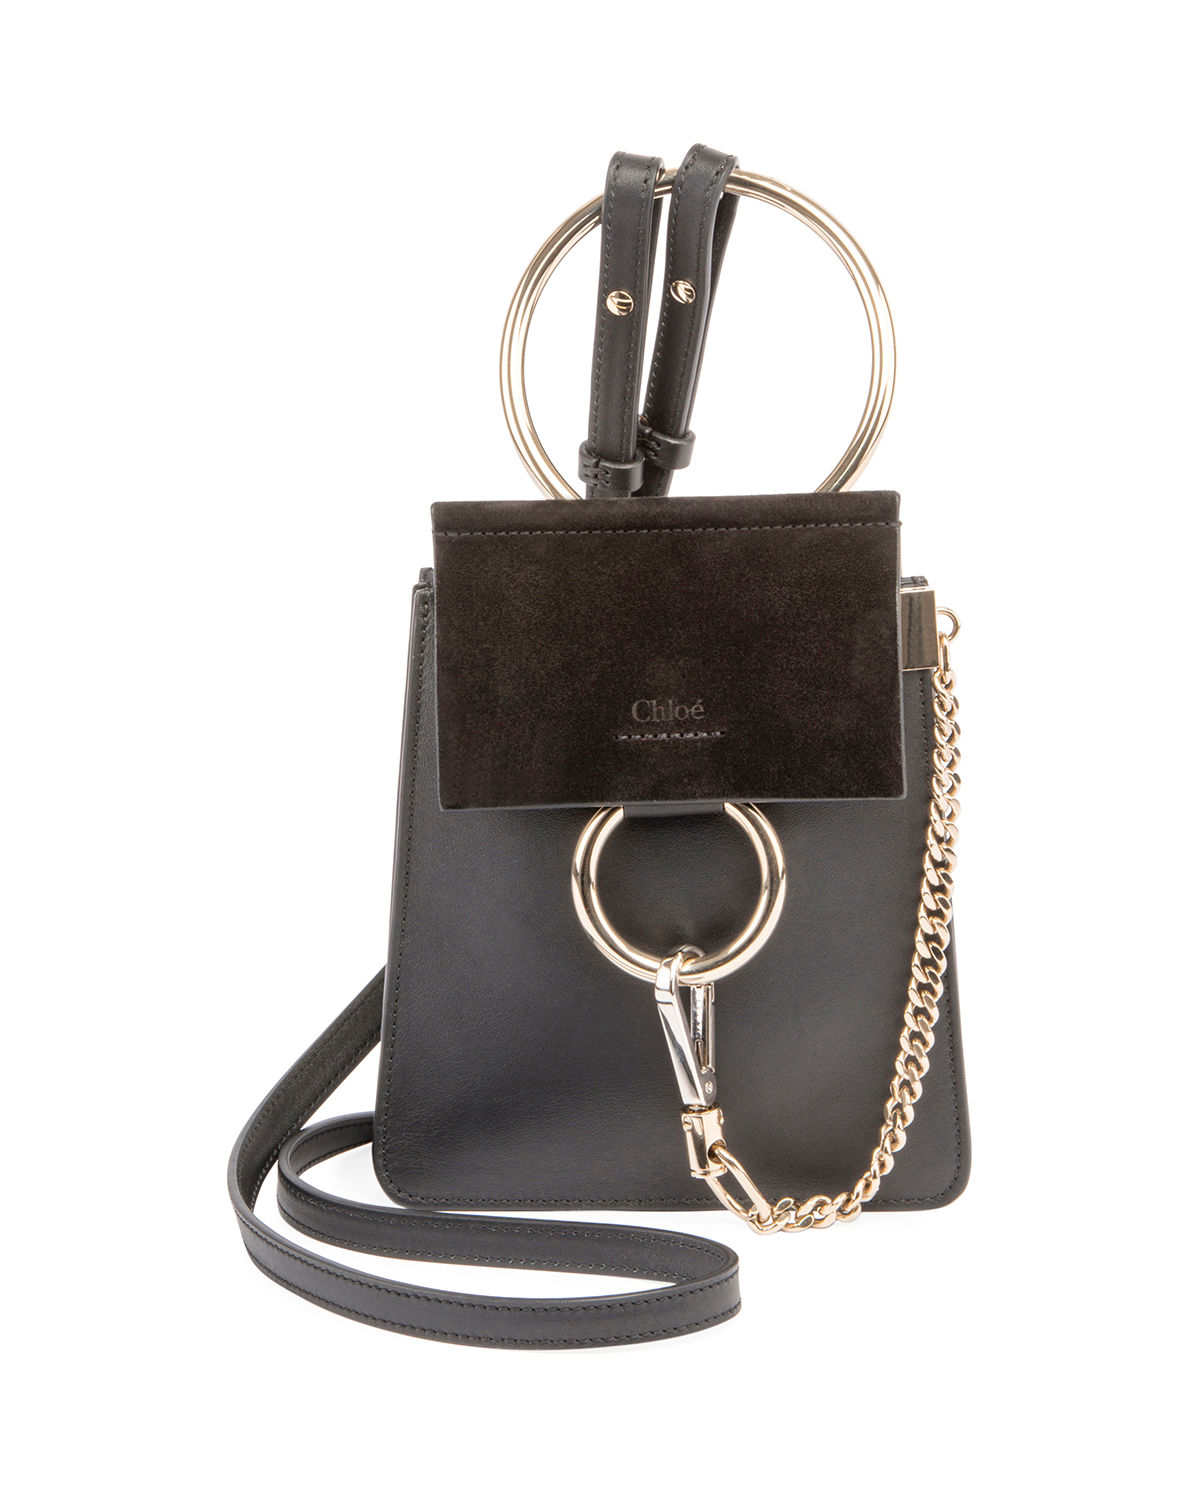 Chloe Faye Small Leather Bracelet Bag  9450e26c9d999